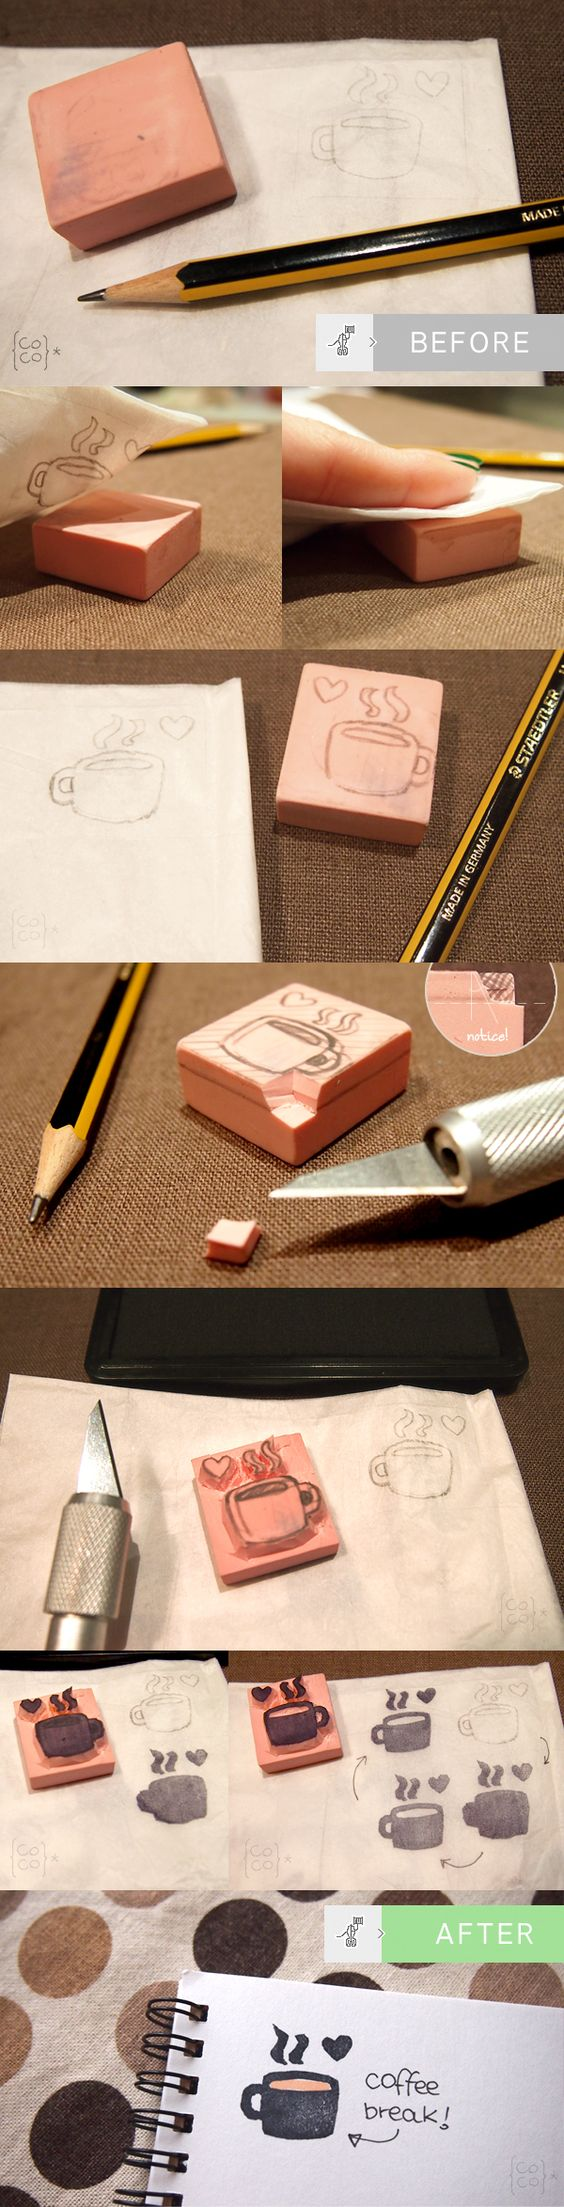 """How to do Rubber Stamps! .... unfortunately the link says """"page not found"""" but i am certain if i snoop well enough, I WILL find the original source post...here goest!"""